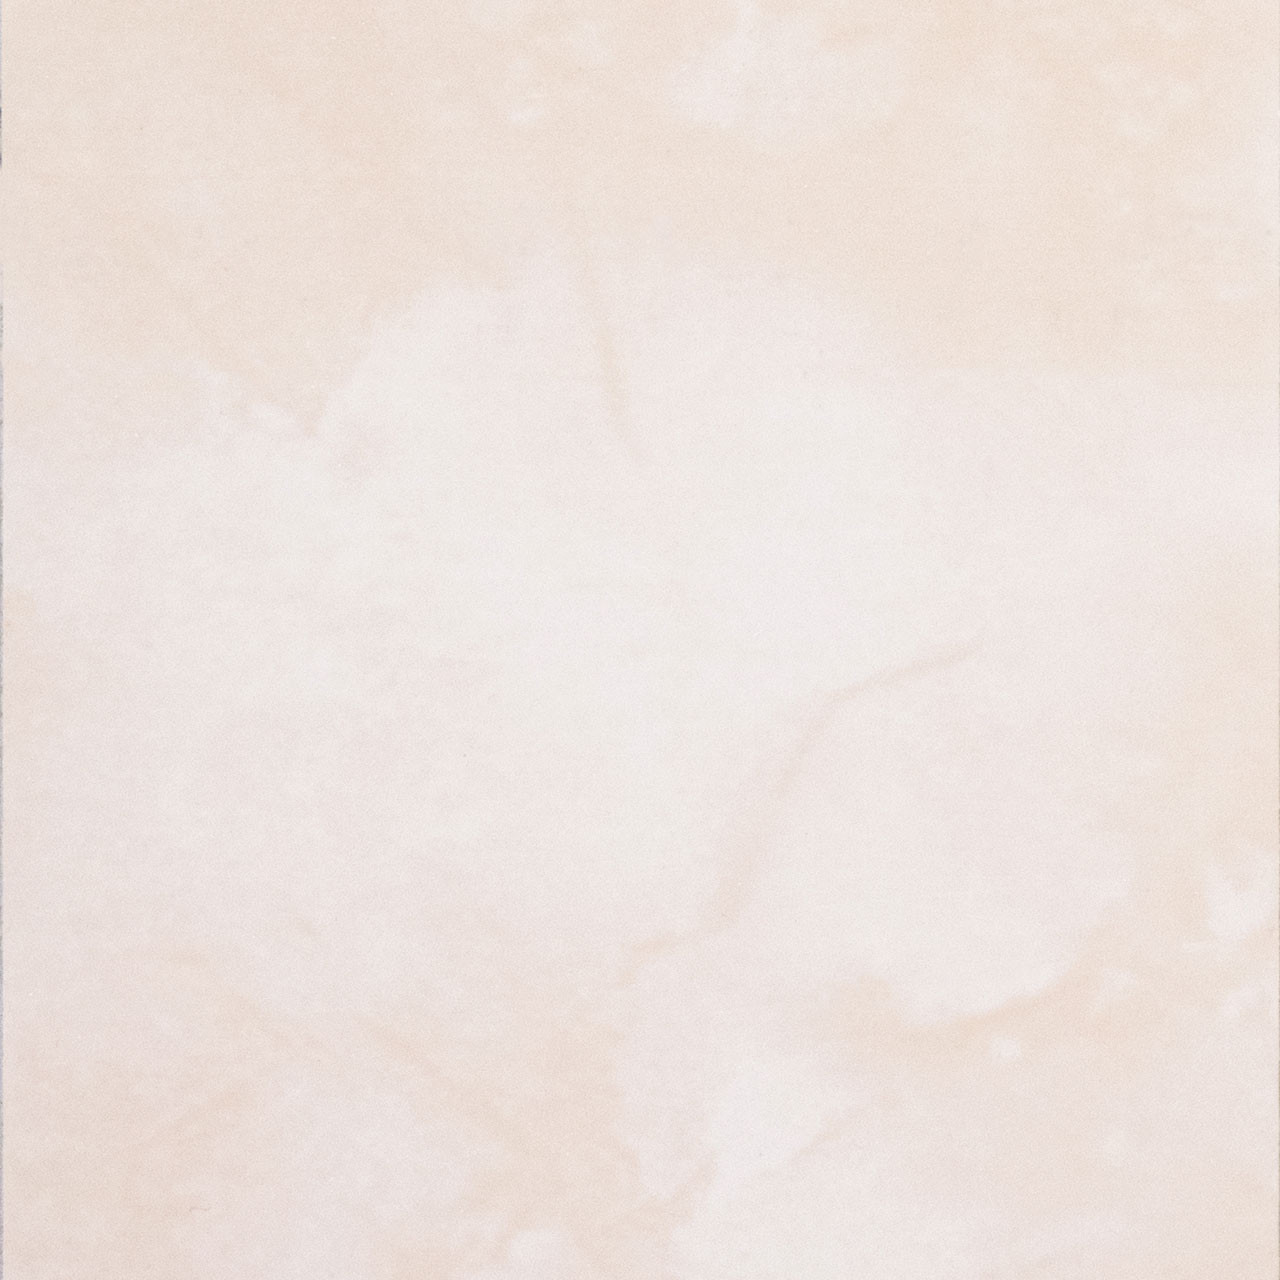 Multipanel Pergamon Marble 2700mm x 250mm Bathroom Ceiling Panels